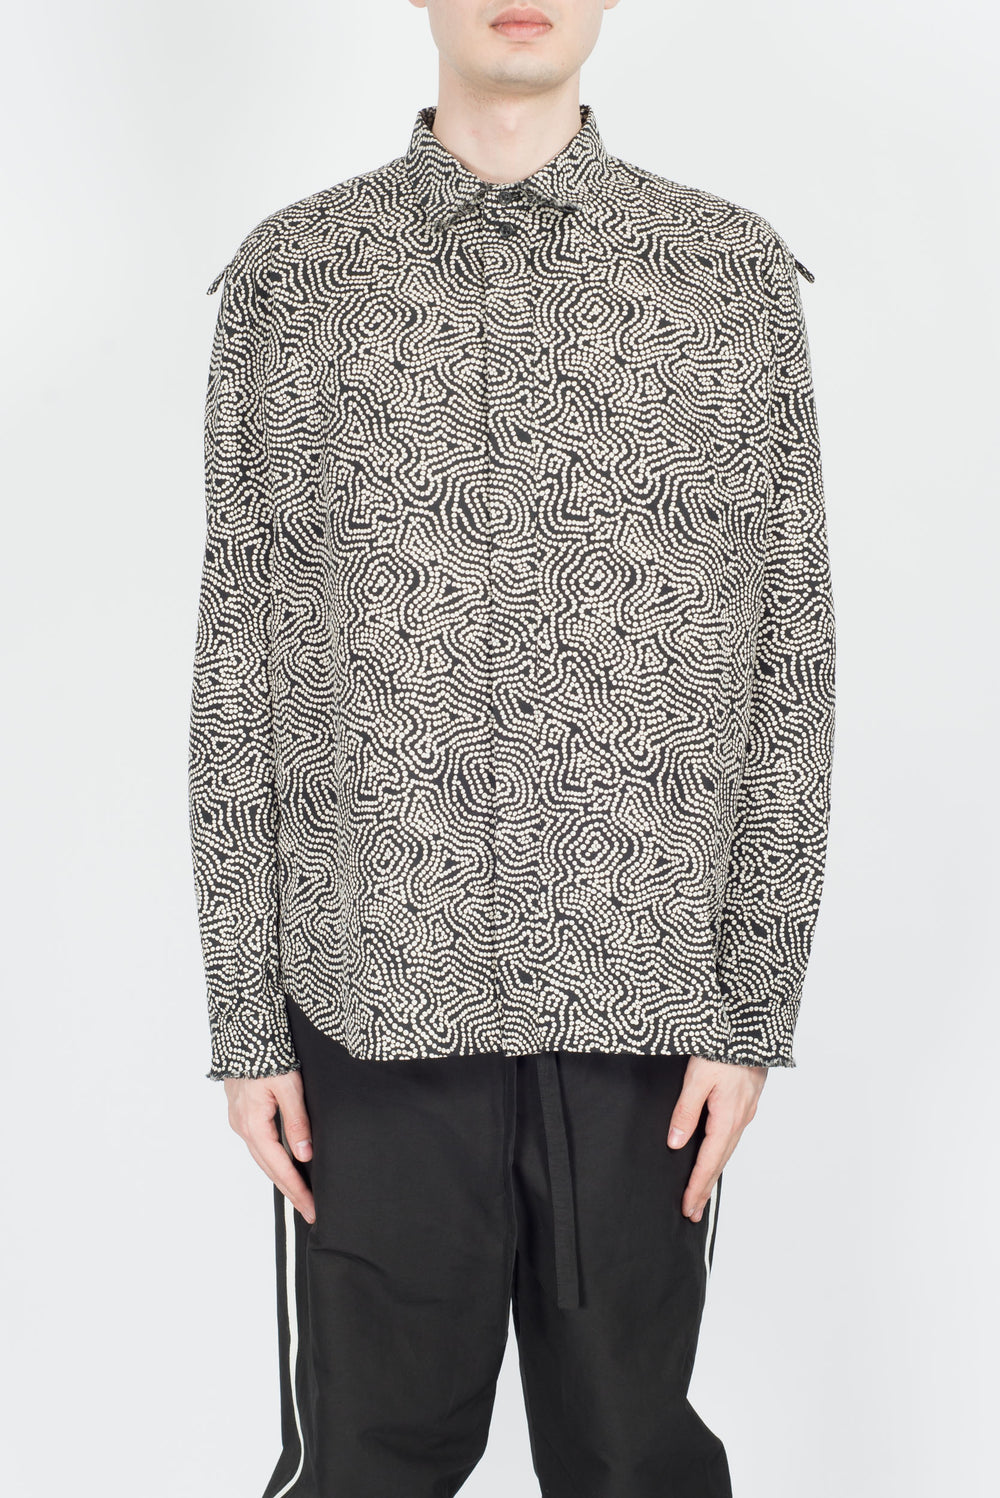 Damir Doma Sten Shirt In Coal/Chalk